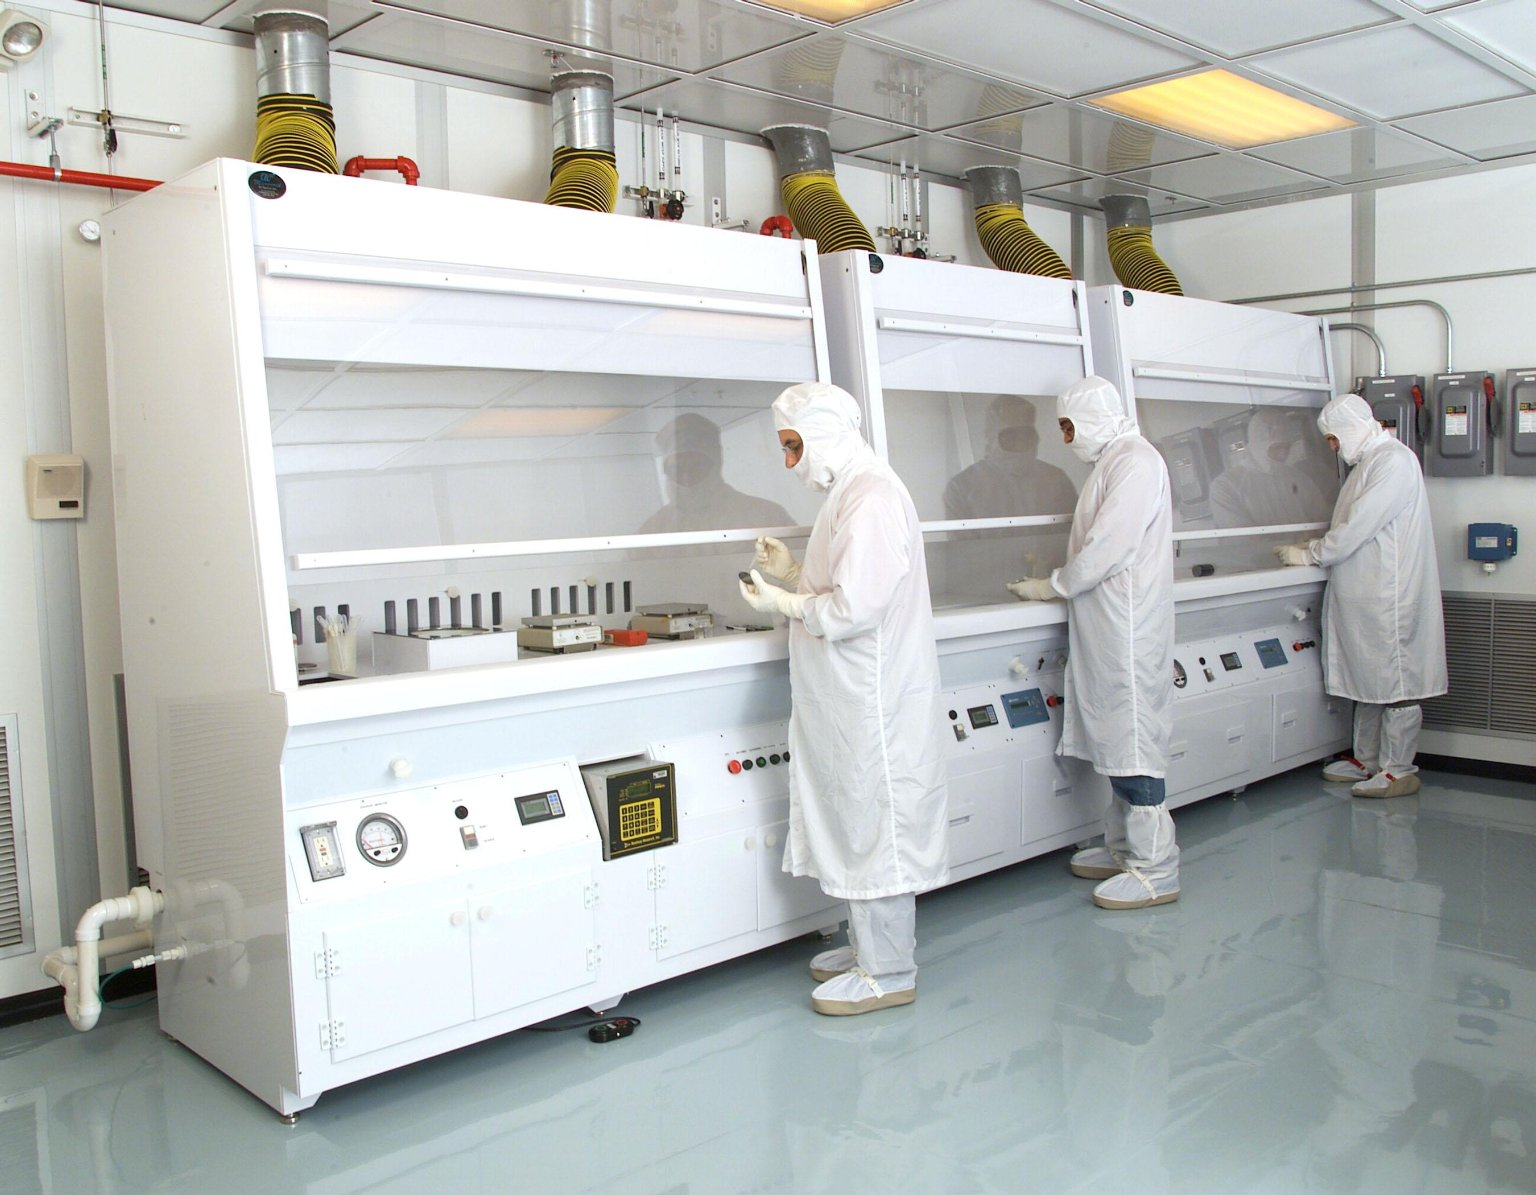 This featured image shows a class 100 clean room at the NASA Glenn Research Center used for fabricating sensors and electronics for jet engines and spacecraft.